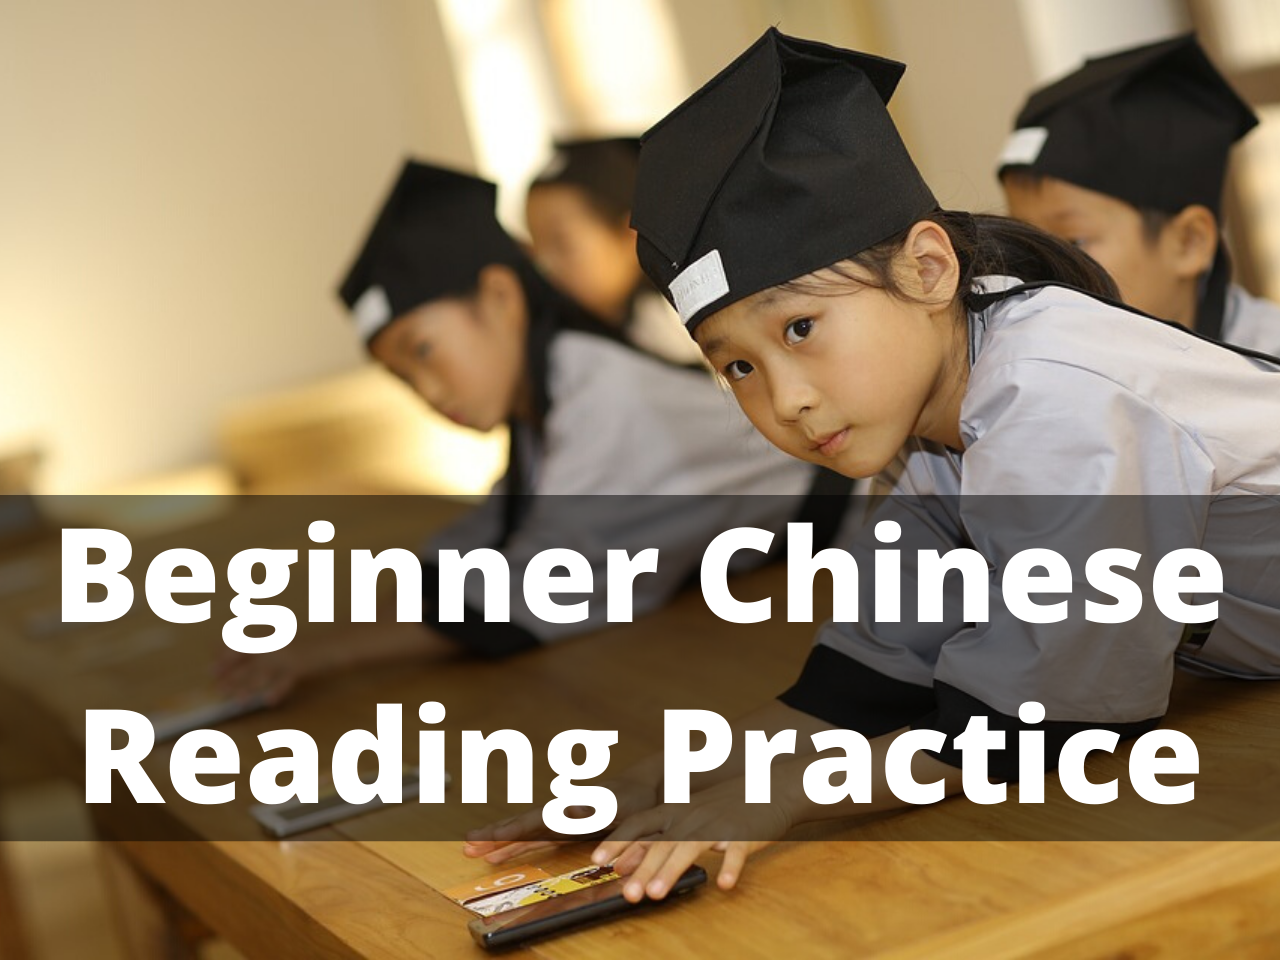 Chinese Reading Practice for Beginners